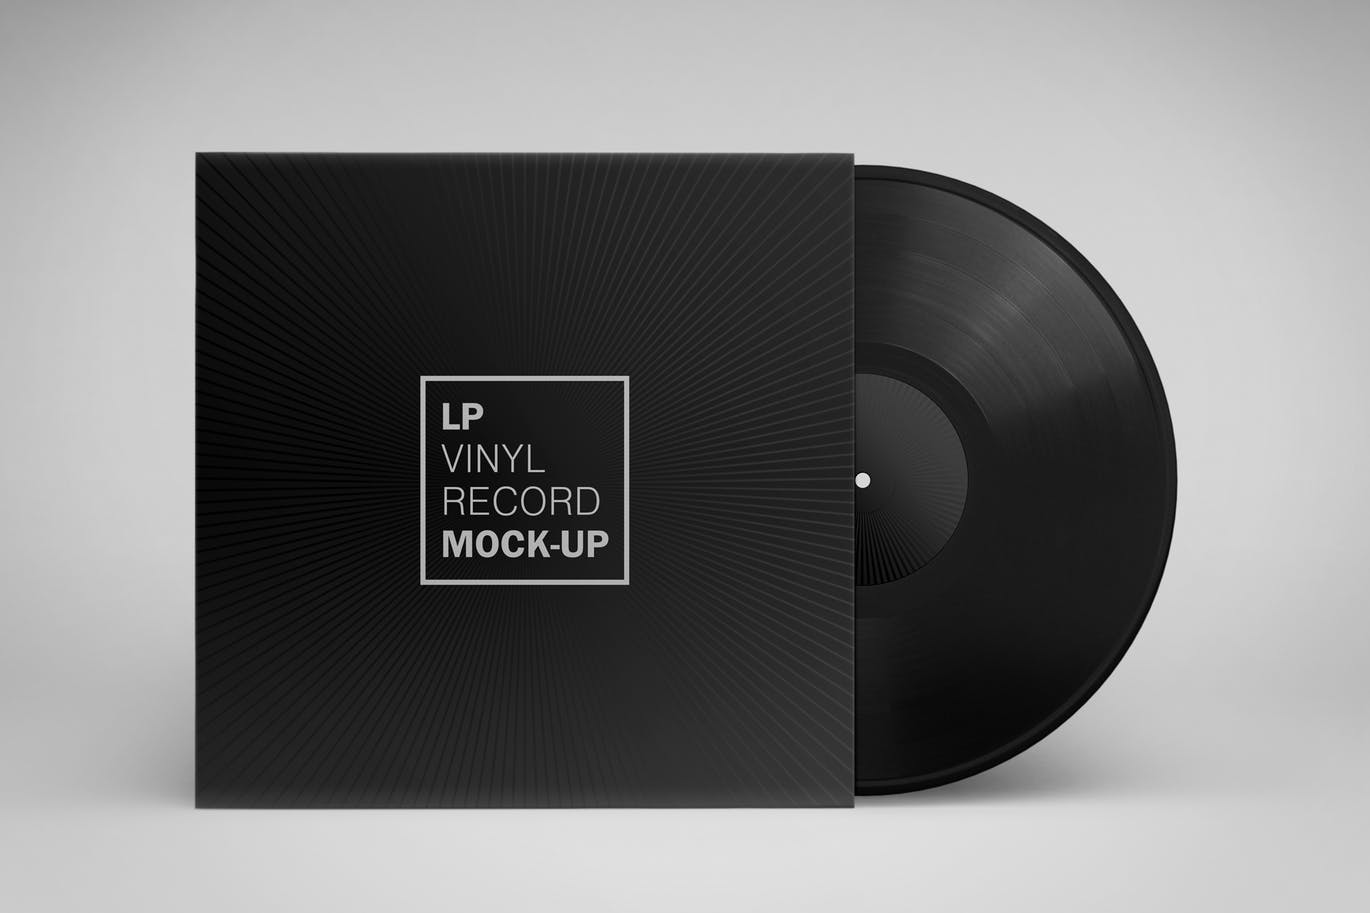 This Vinyl Record And Cover Mockup Featuring A Modern Design Come In 8 Psd Files With Diffe Perspectives Each File Contains Fully Layered Smart Objects